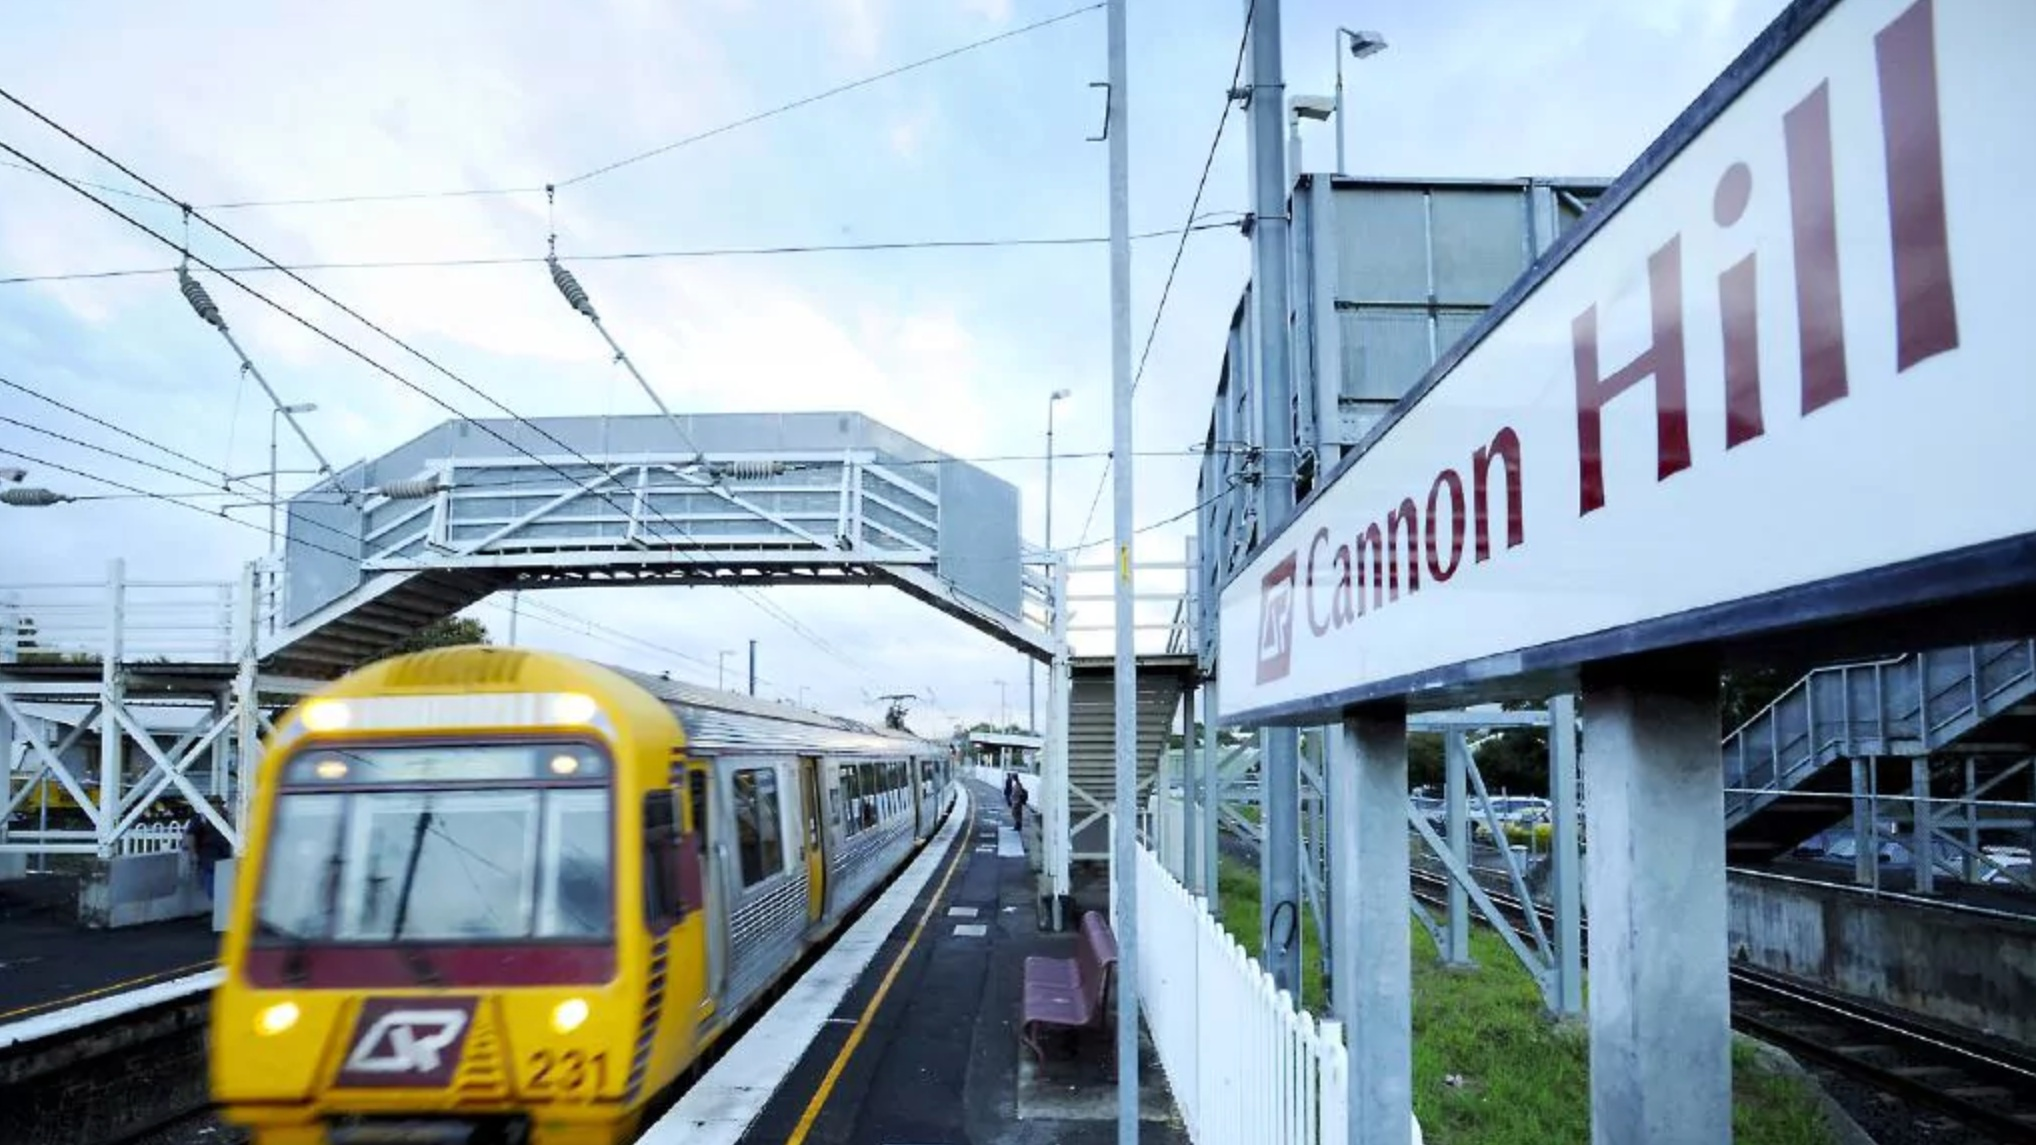 cannon-hill-train-station